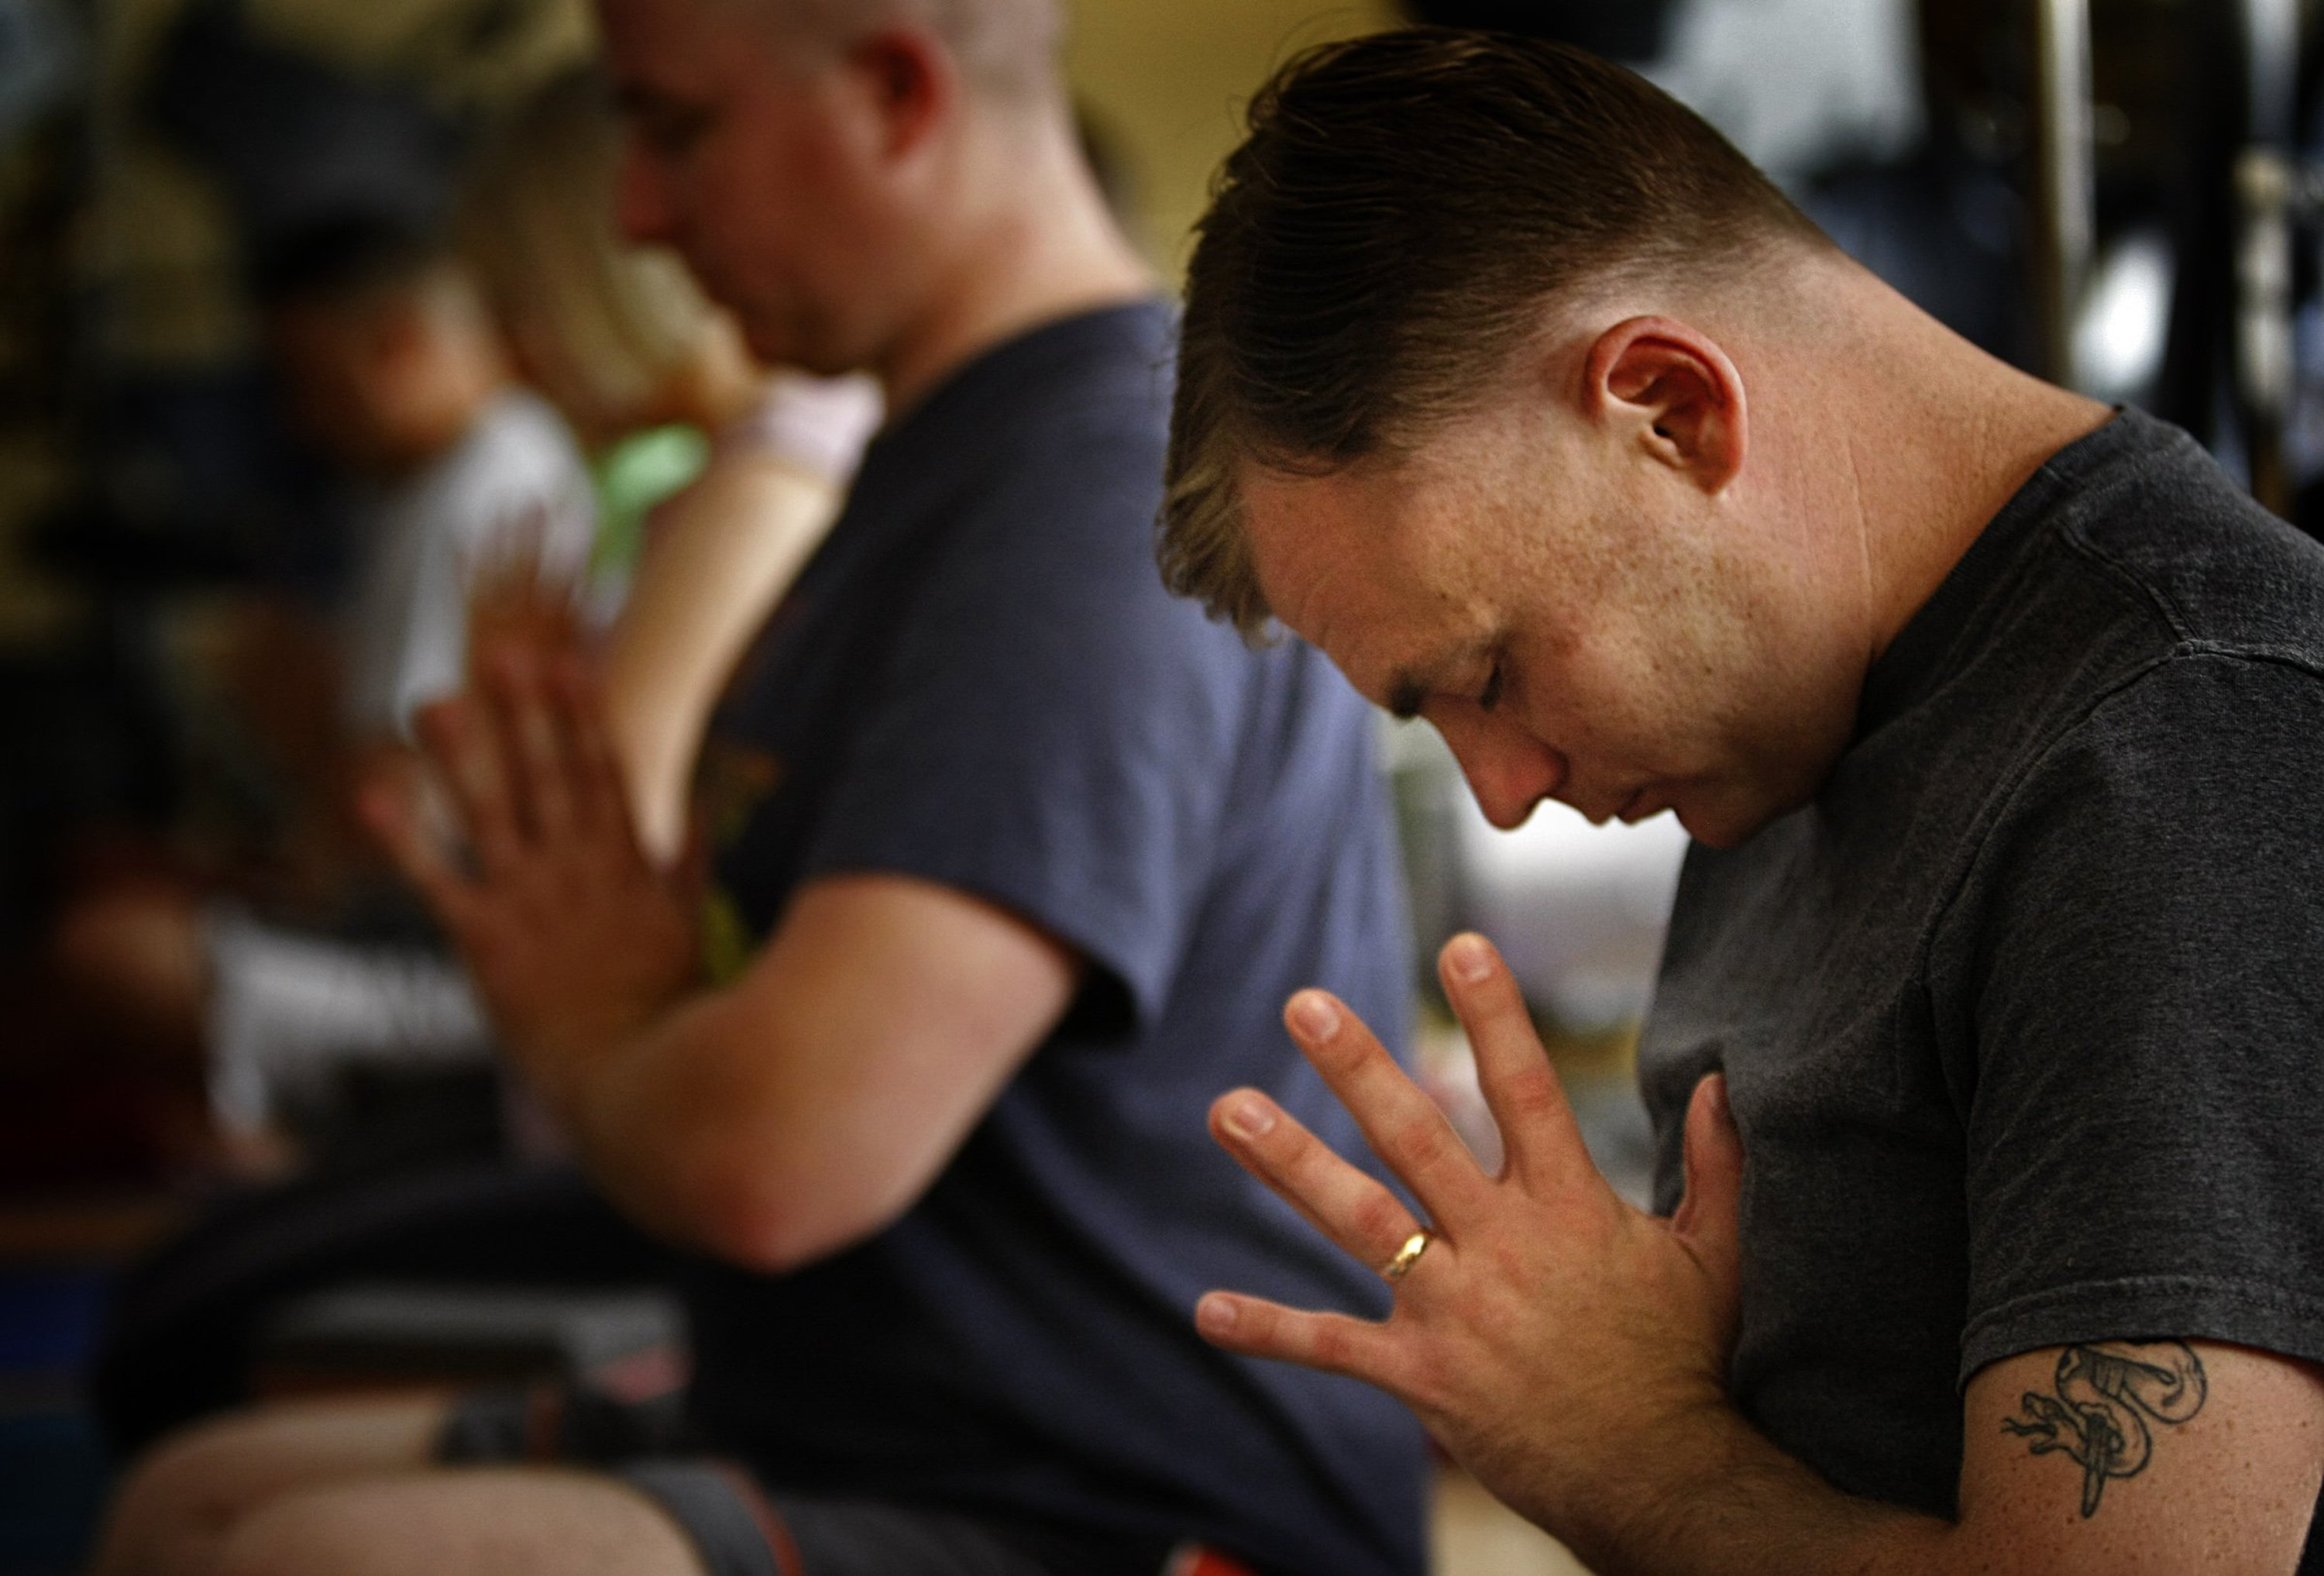 U.S. Marine Sgt. James Bernard, 25, meditates during a yoga class at the Naval Medical Center in San Diego, California, on June 10, 2013. Bernard suffers from PTSD and a traumatic brain injury after deployments to Iraq and Afghanistan. The one-hour yoga class is designed to calm the mind, increase flexibility and improve physical strength. (Don Bartletti/Los Angeles Times/MCT)